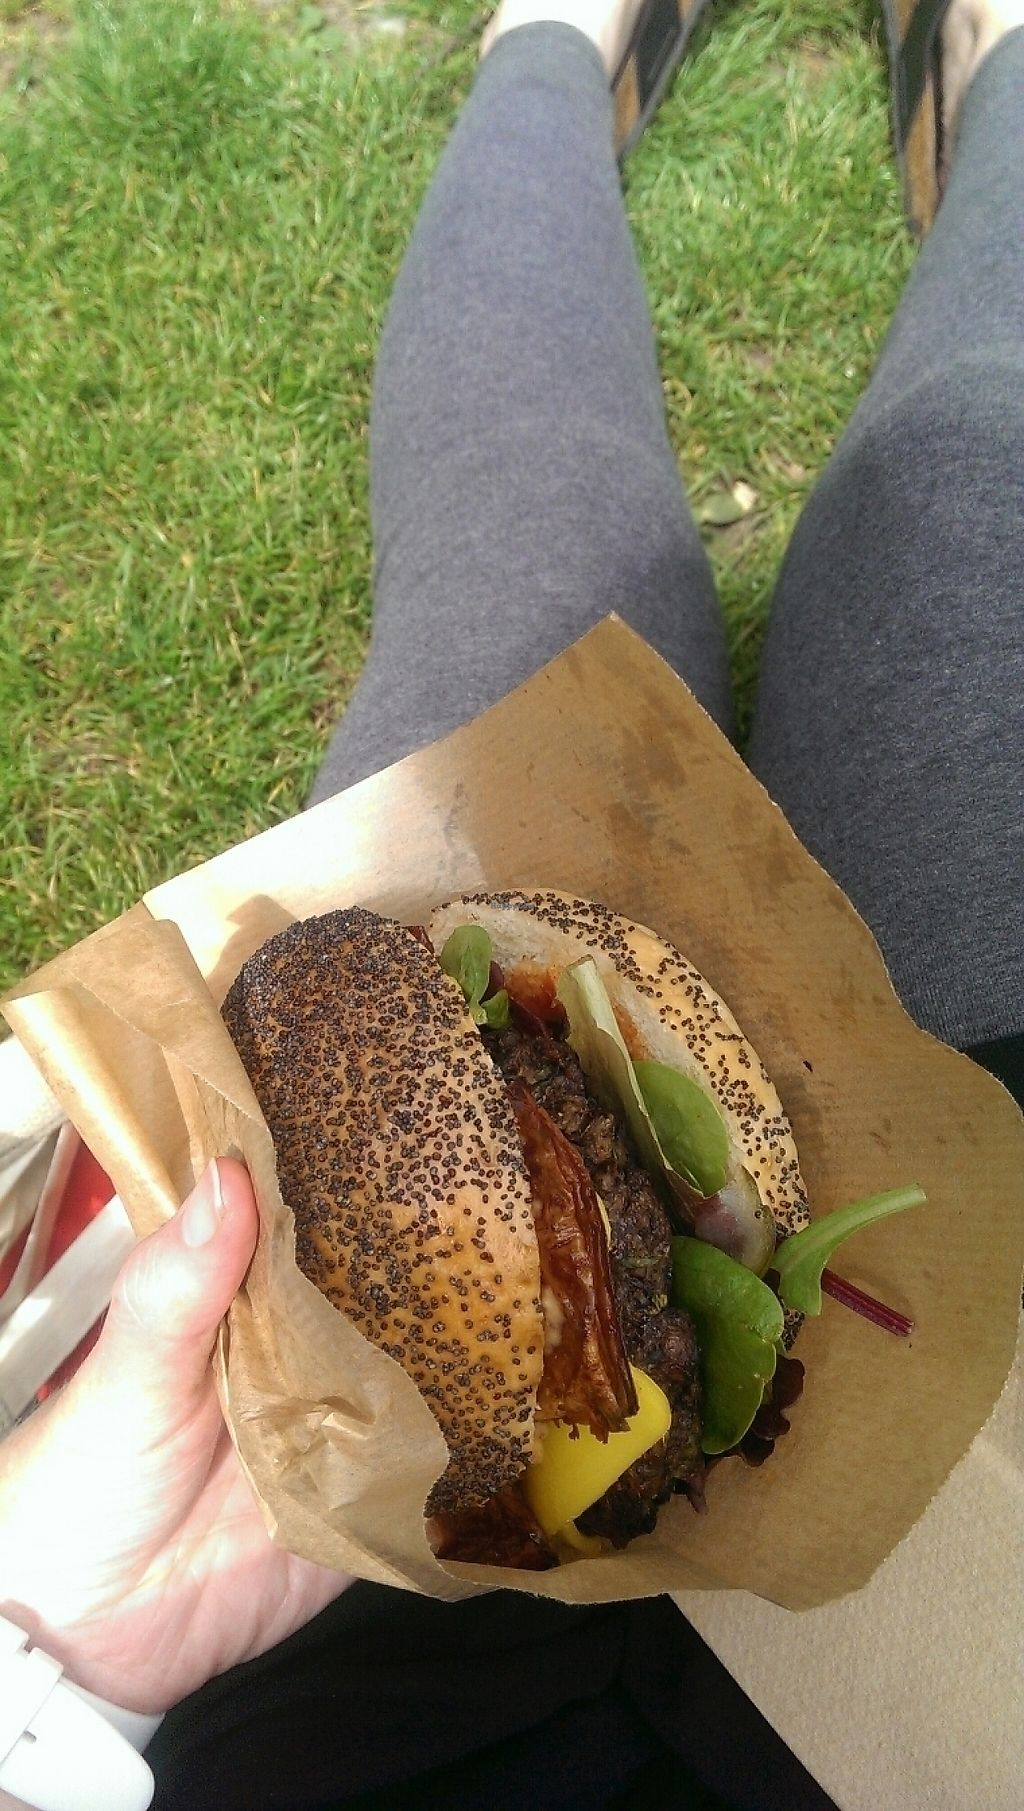 """Photo of Big V - Broadway Market Food Stand  by <a href=""""/members/profile/Clelml"""">Clelml</a> <br/>facon cheeseburger <br/> May 27, 2017  - <a href='/contact/abuse/image/87408/263010'>Report</a>"""